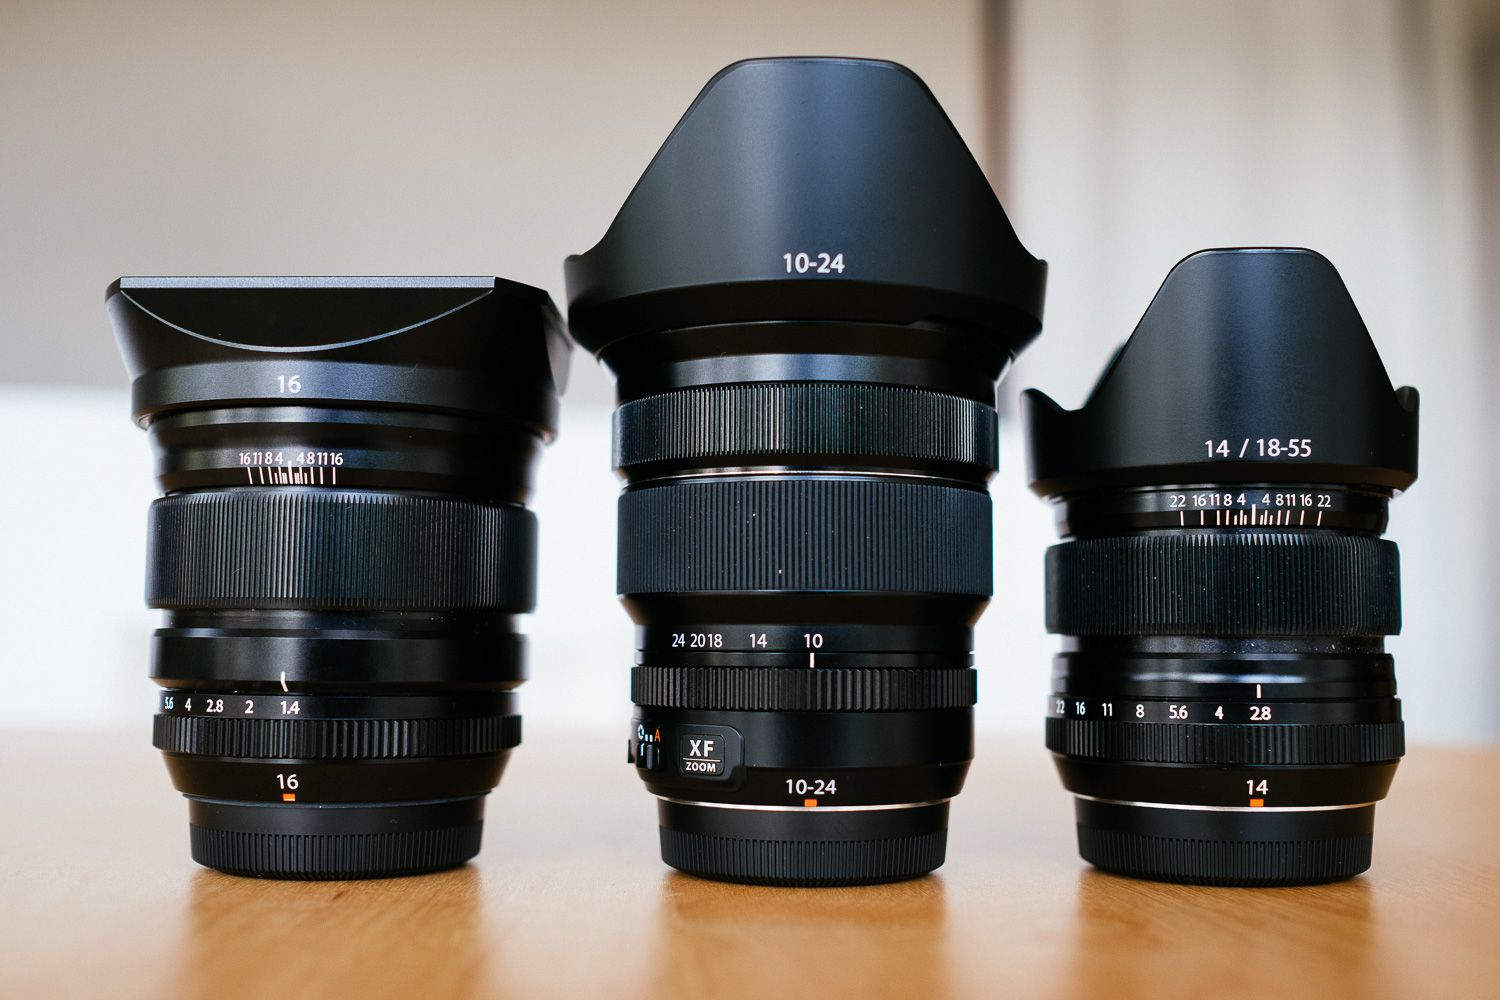 Fujifilm X Pro2 23mm F 2 8 1 30 Sec Iso320 In Most Camera Systems You Would Fujifilm Fuji Wide Angle Lens